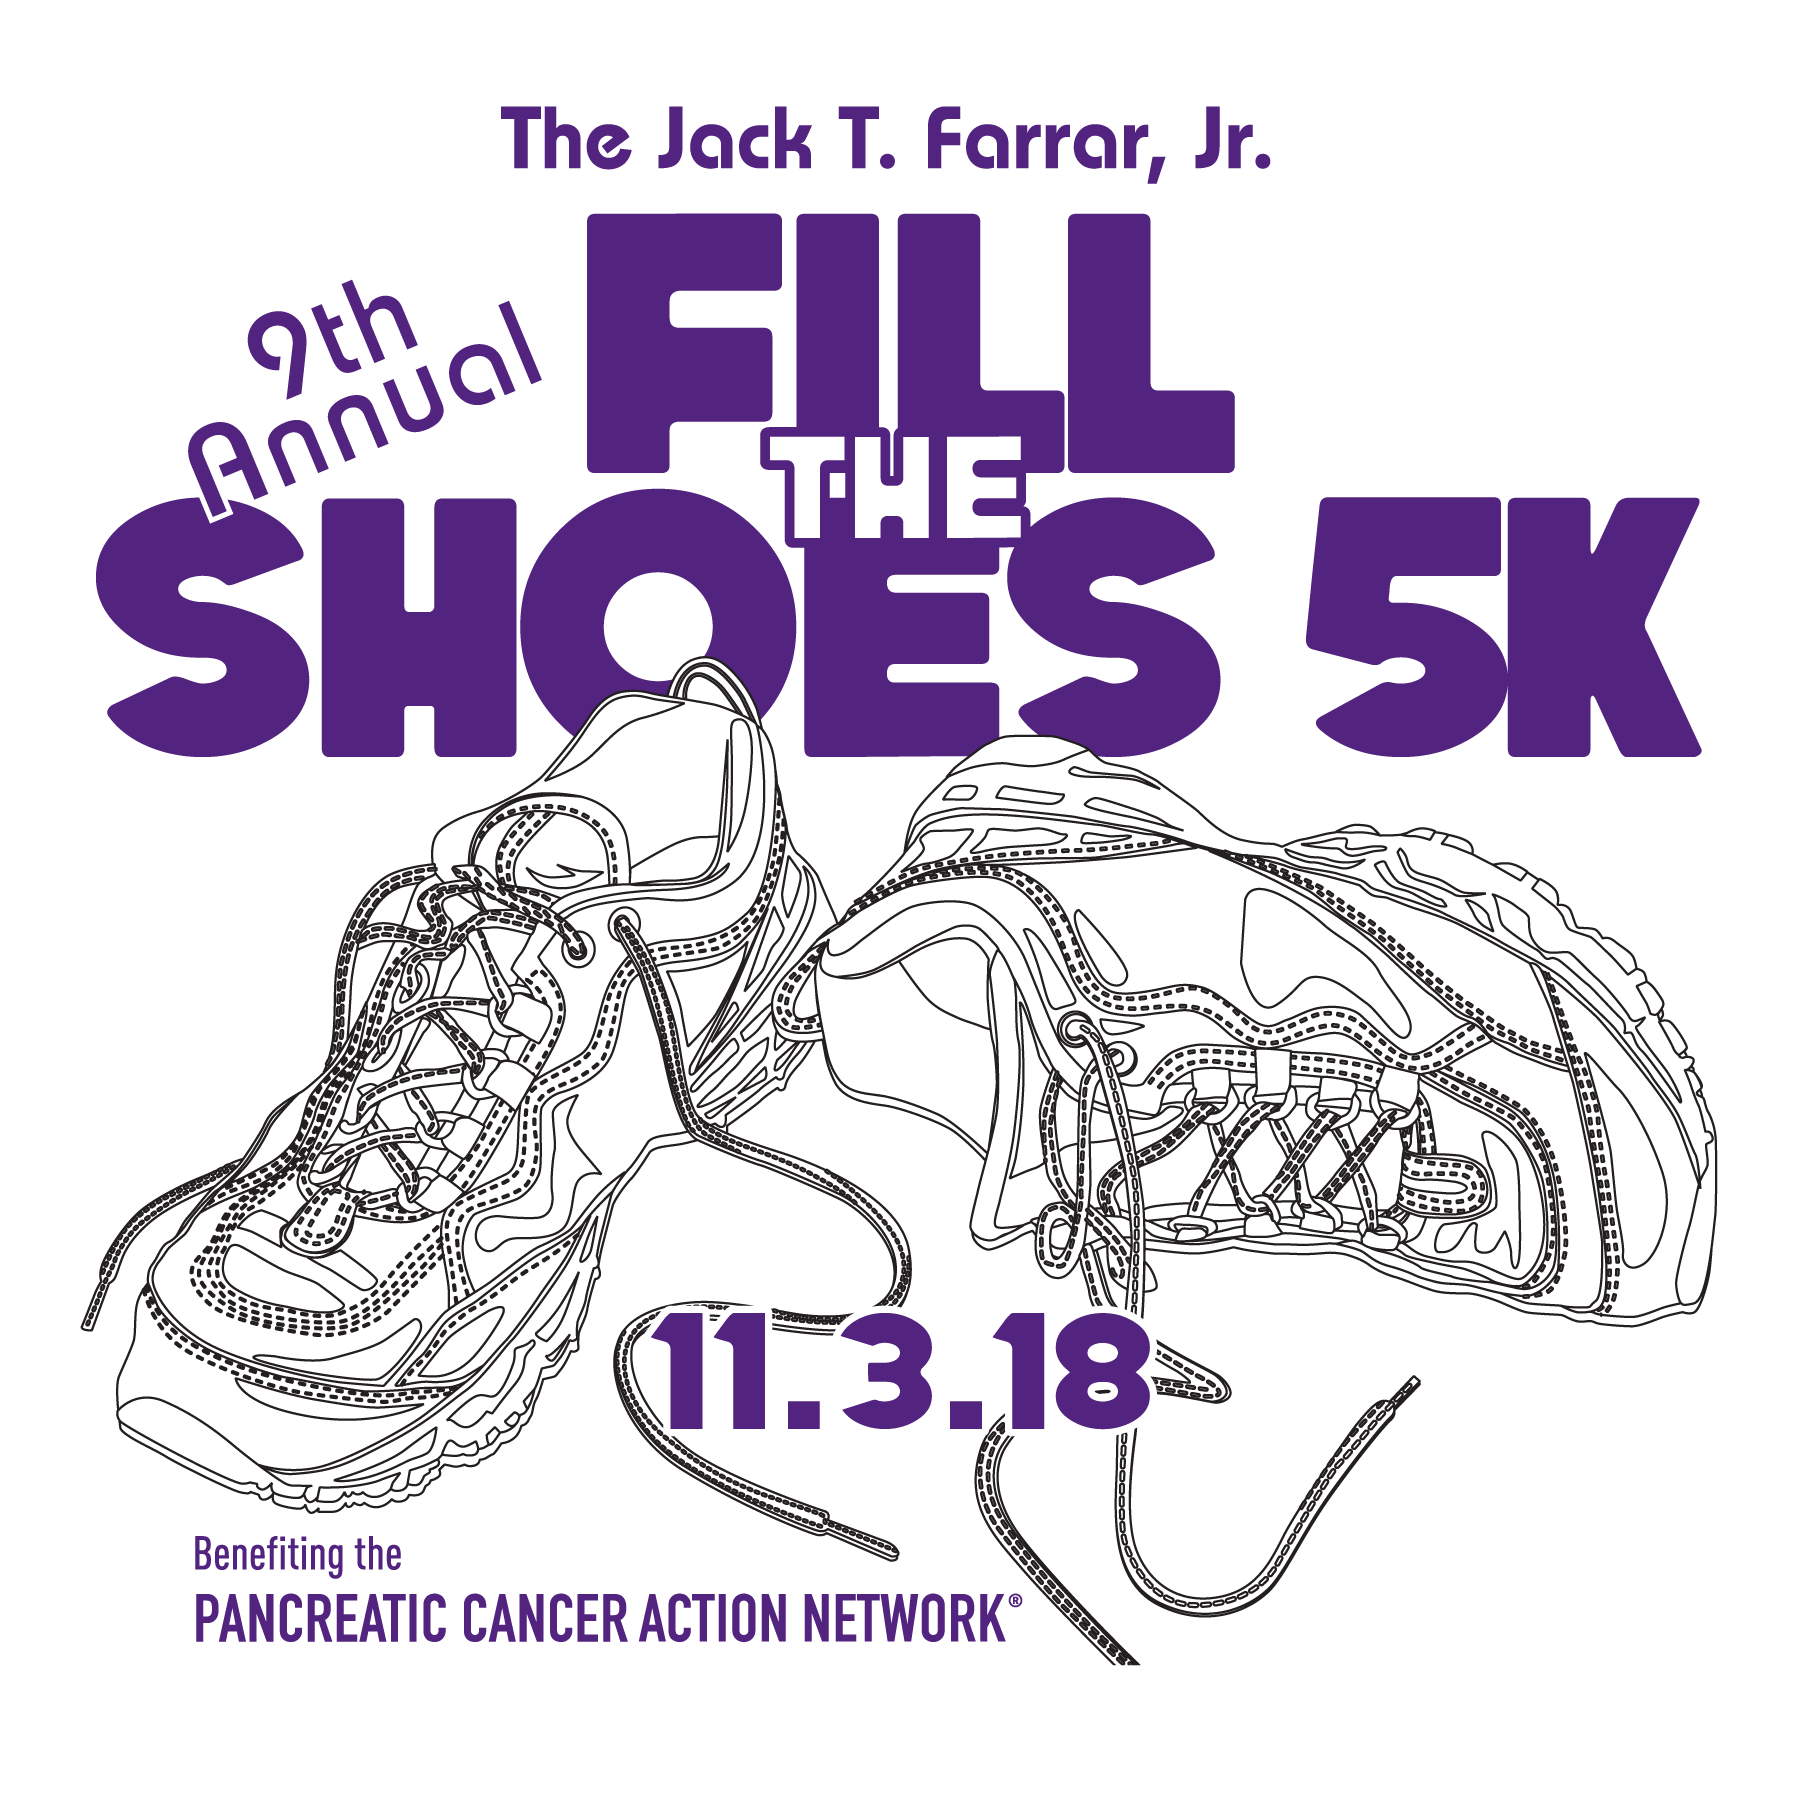 Fill the shoes 5k November3, 2018